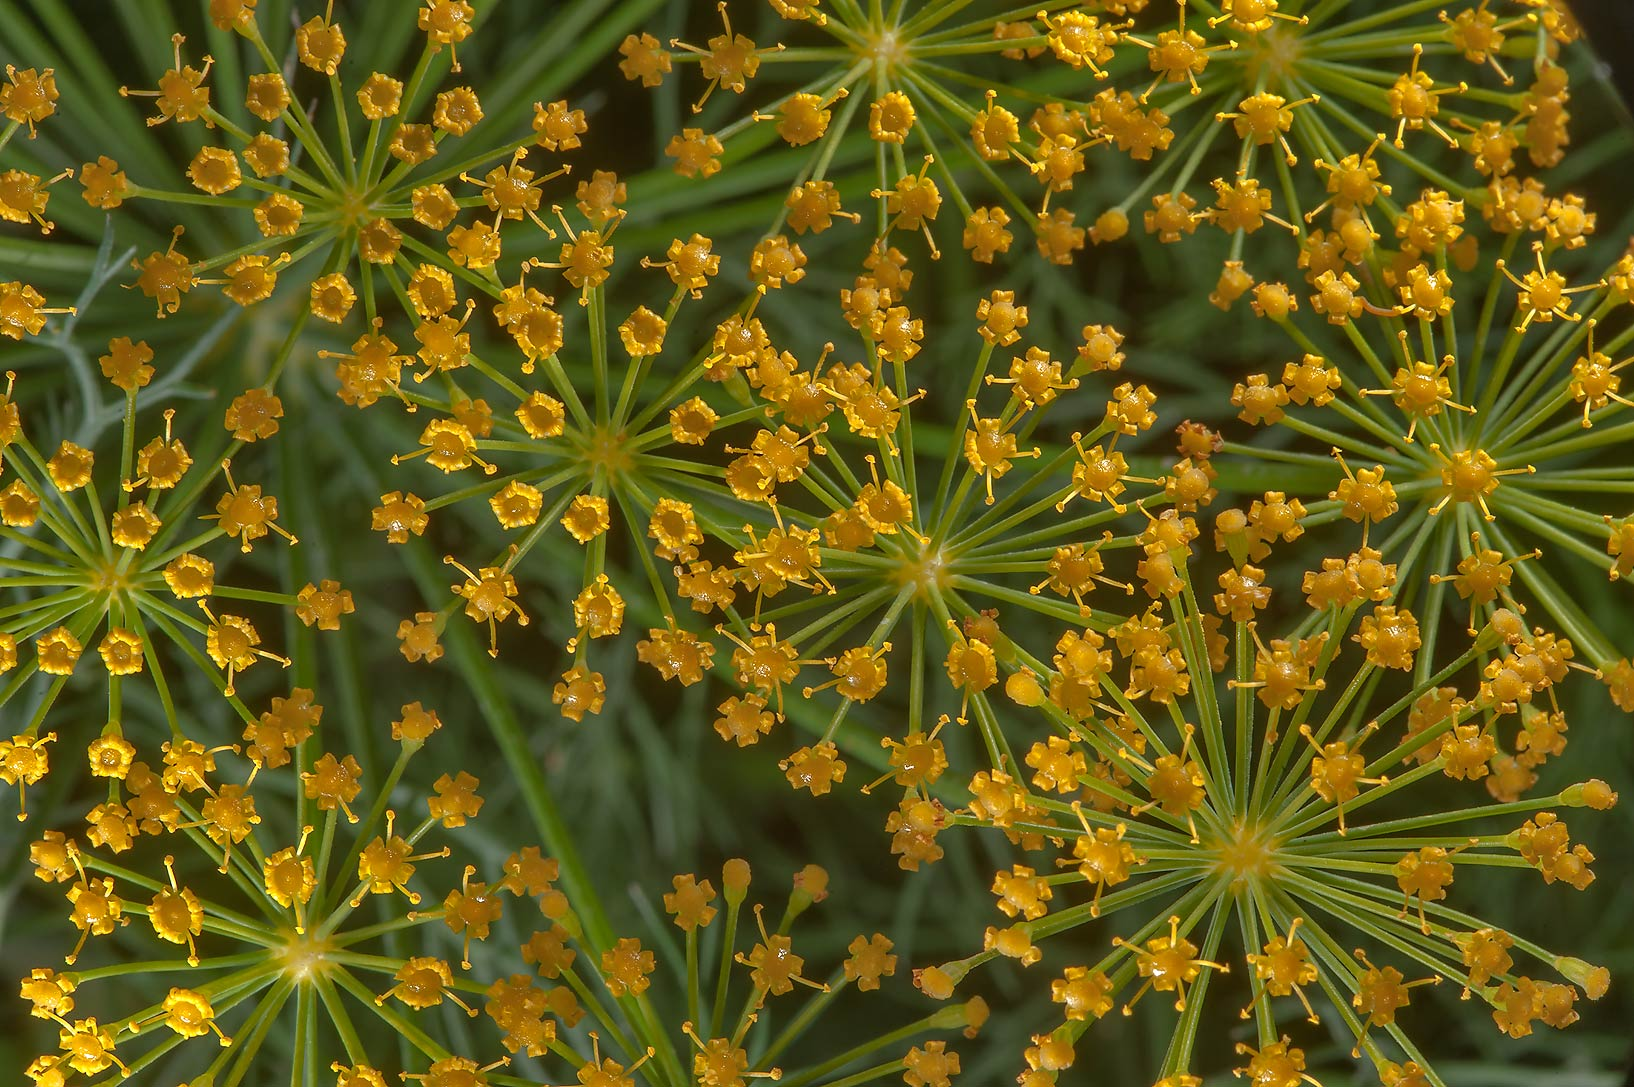 Flowers of fennel (Foeniculum vulgare) in a garden in Al Harrarah. Qatar